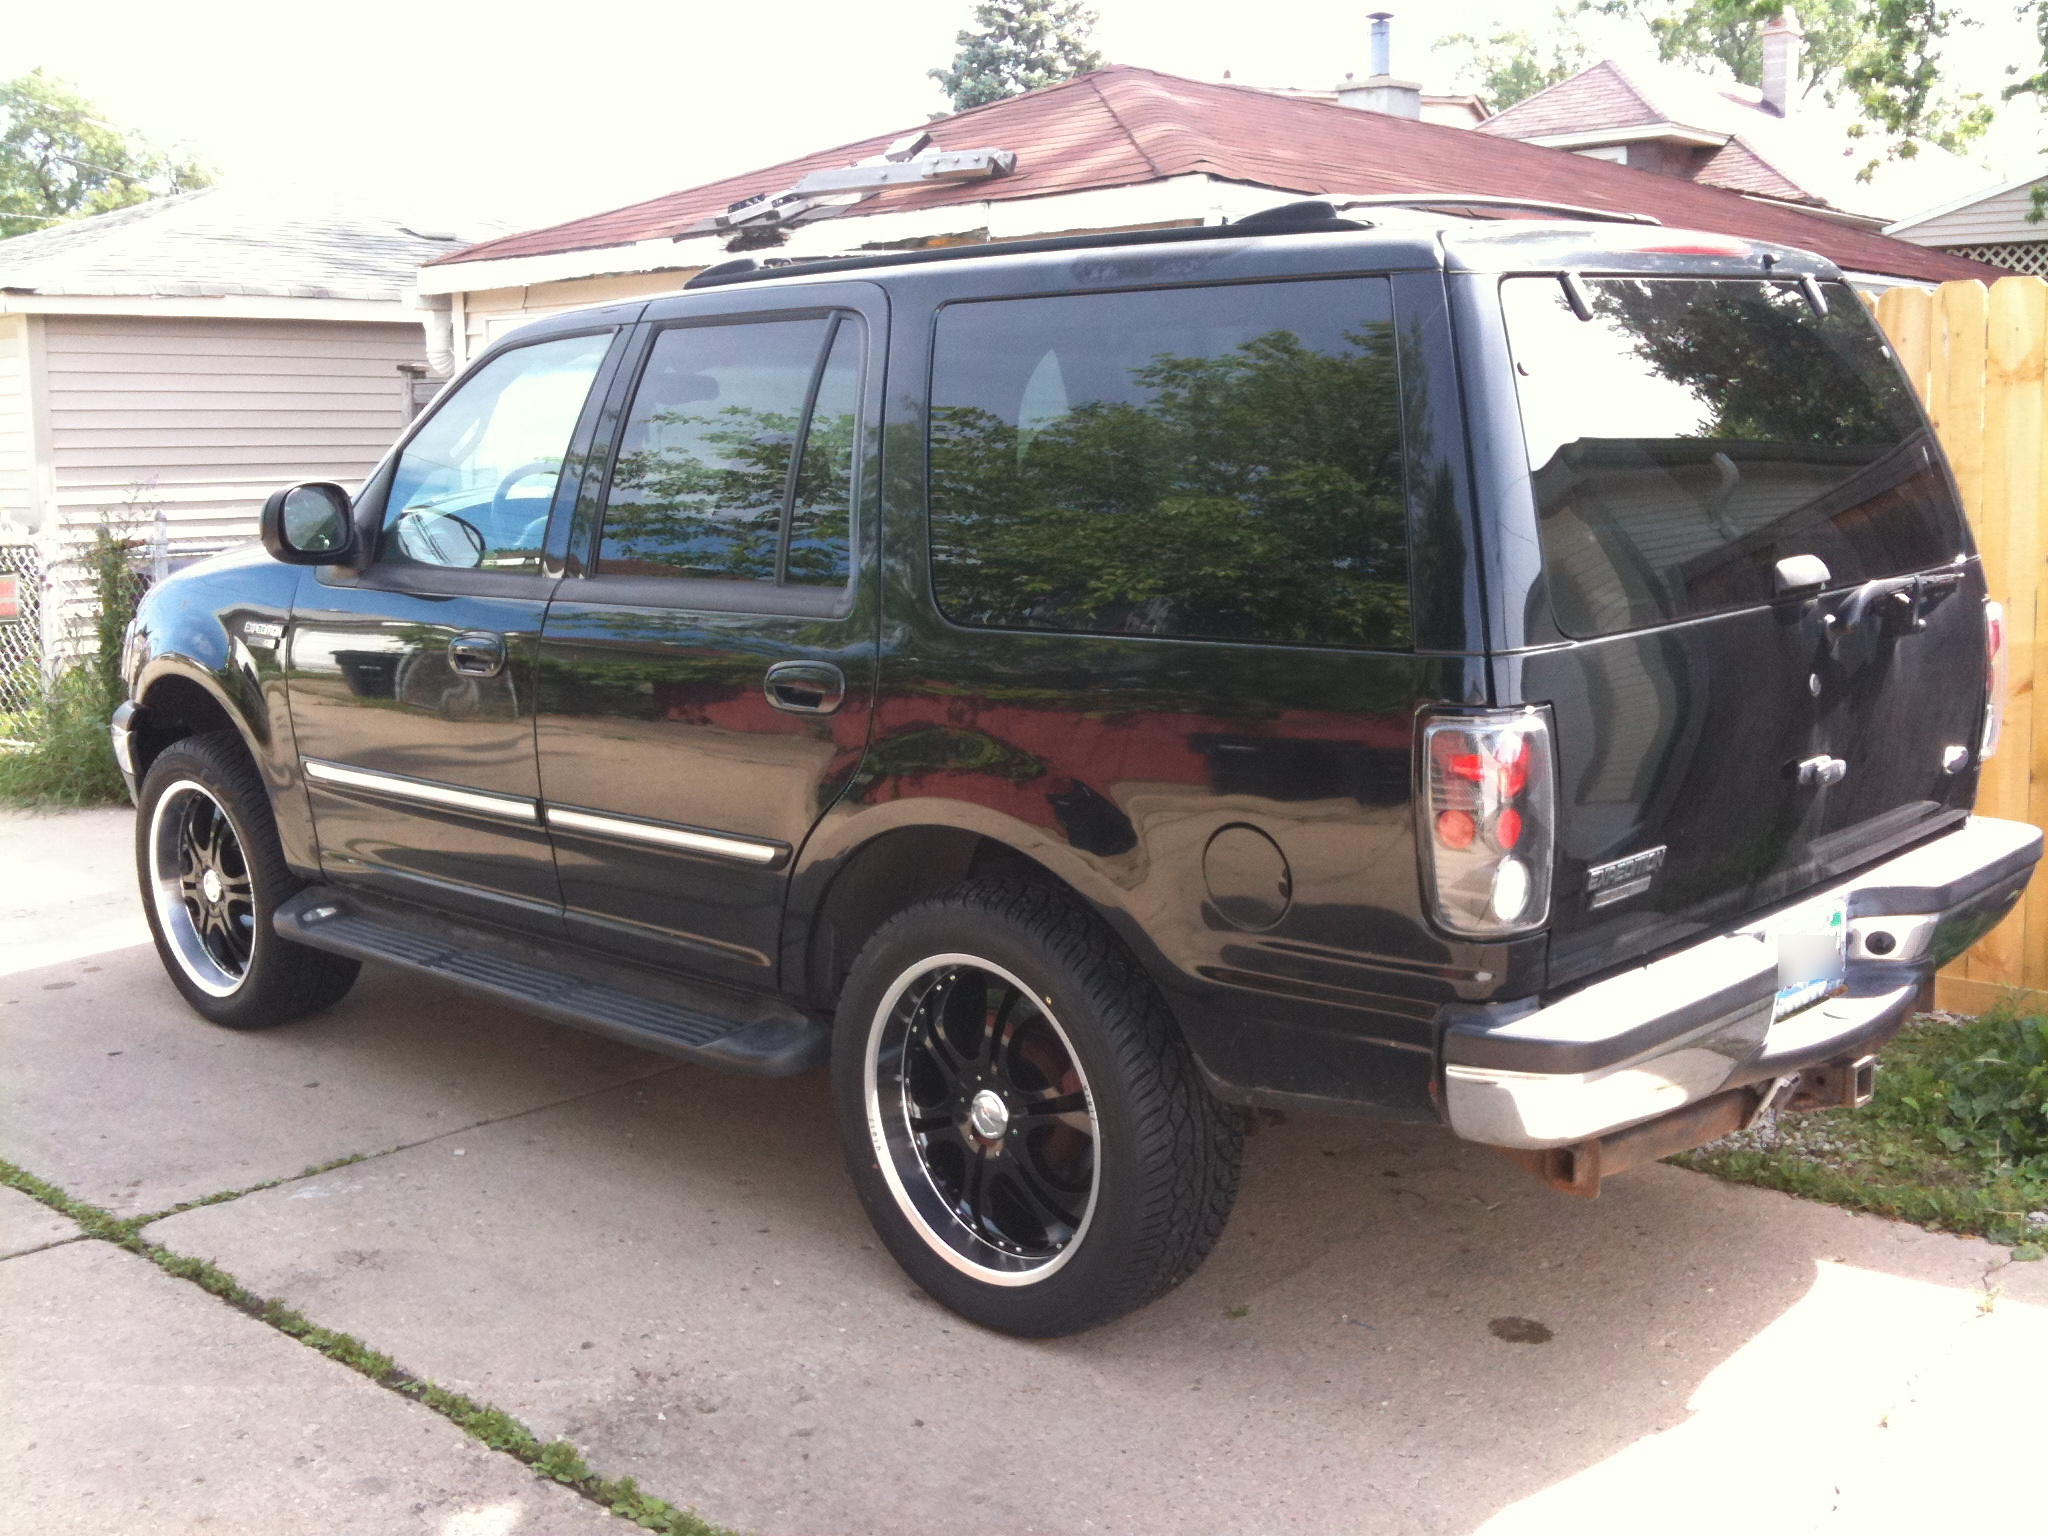 2001 Ford Expedition Image 15